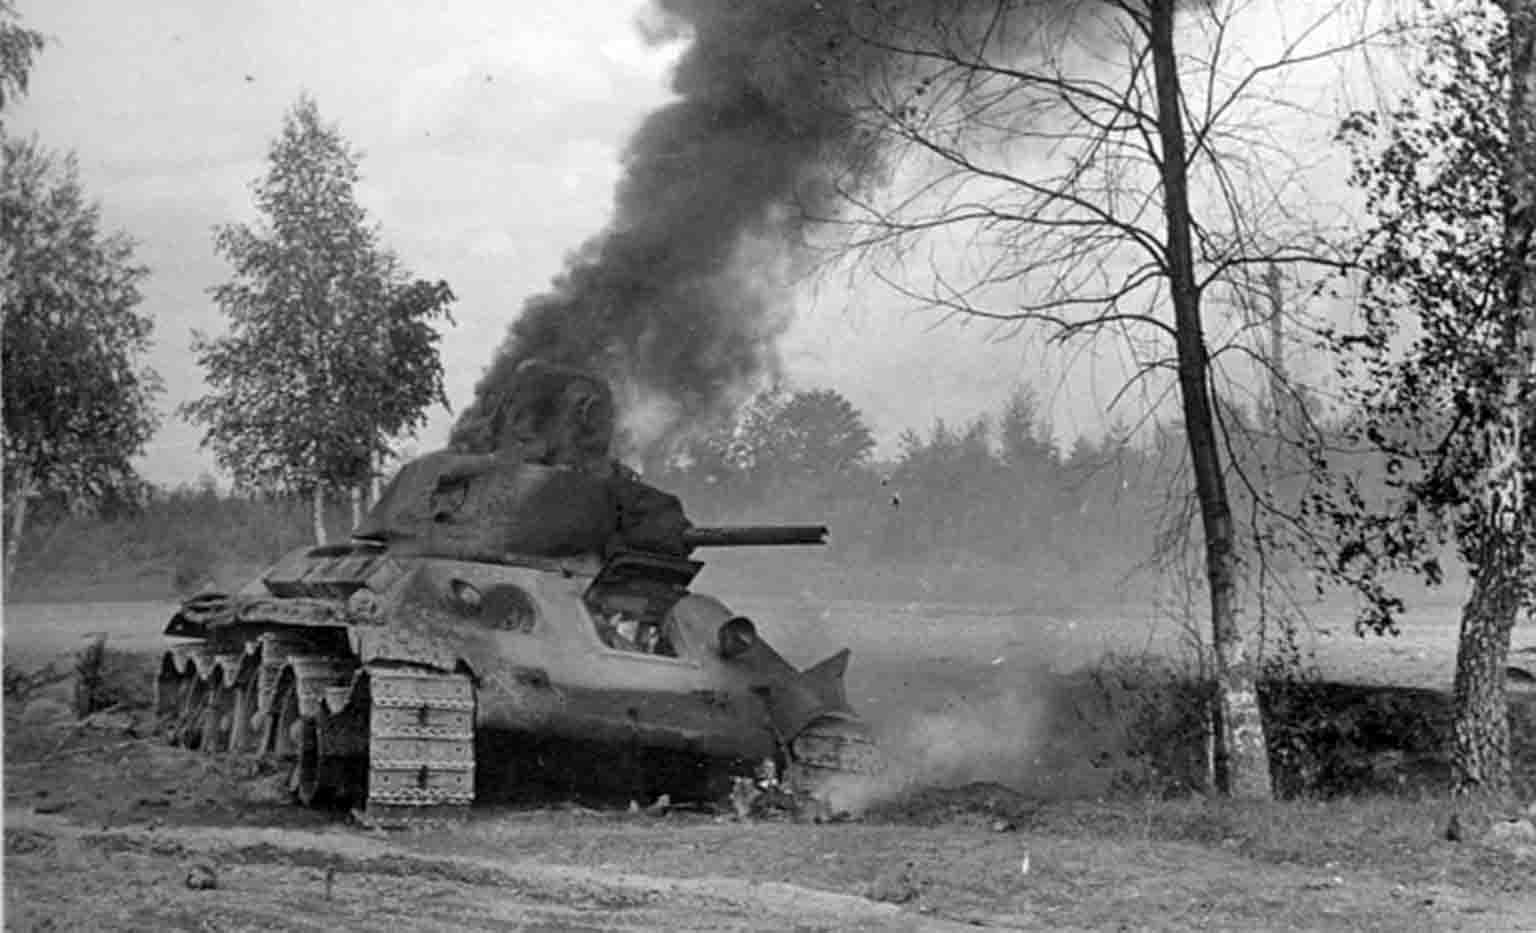 The damaged and burning Soviet T-34 tank